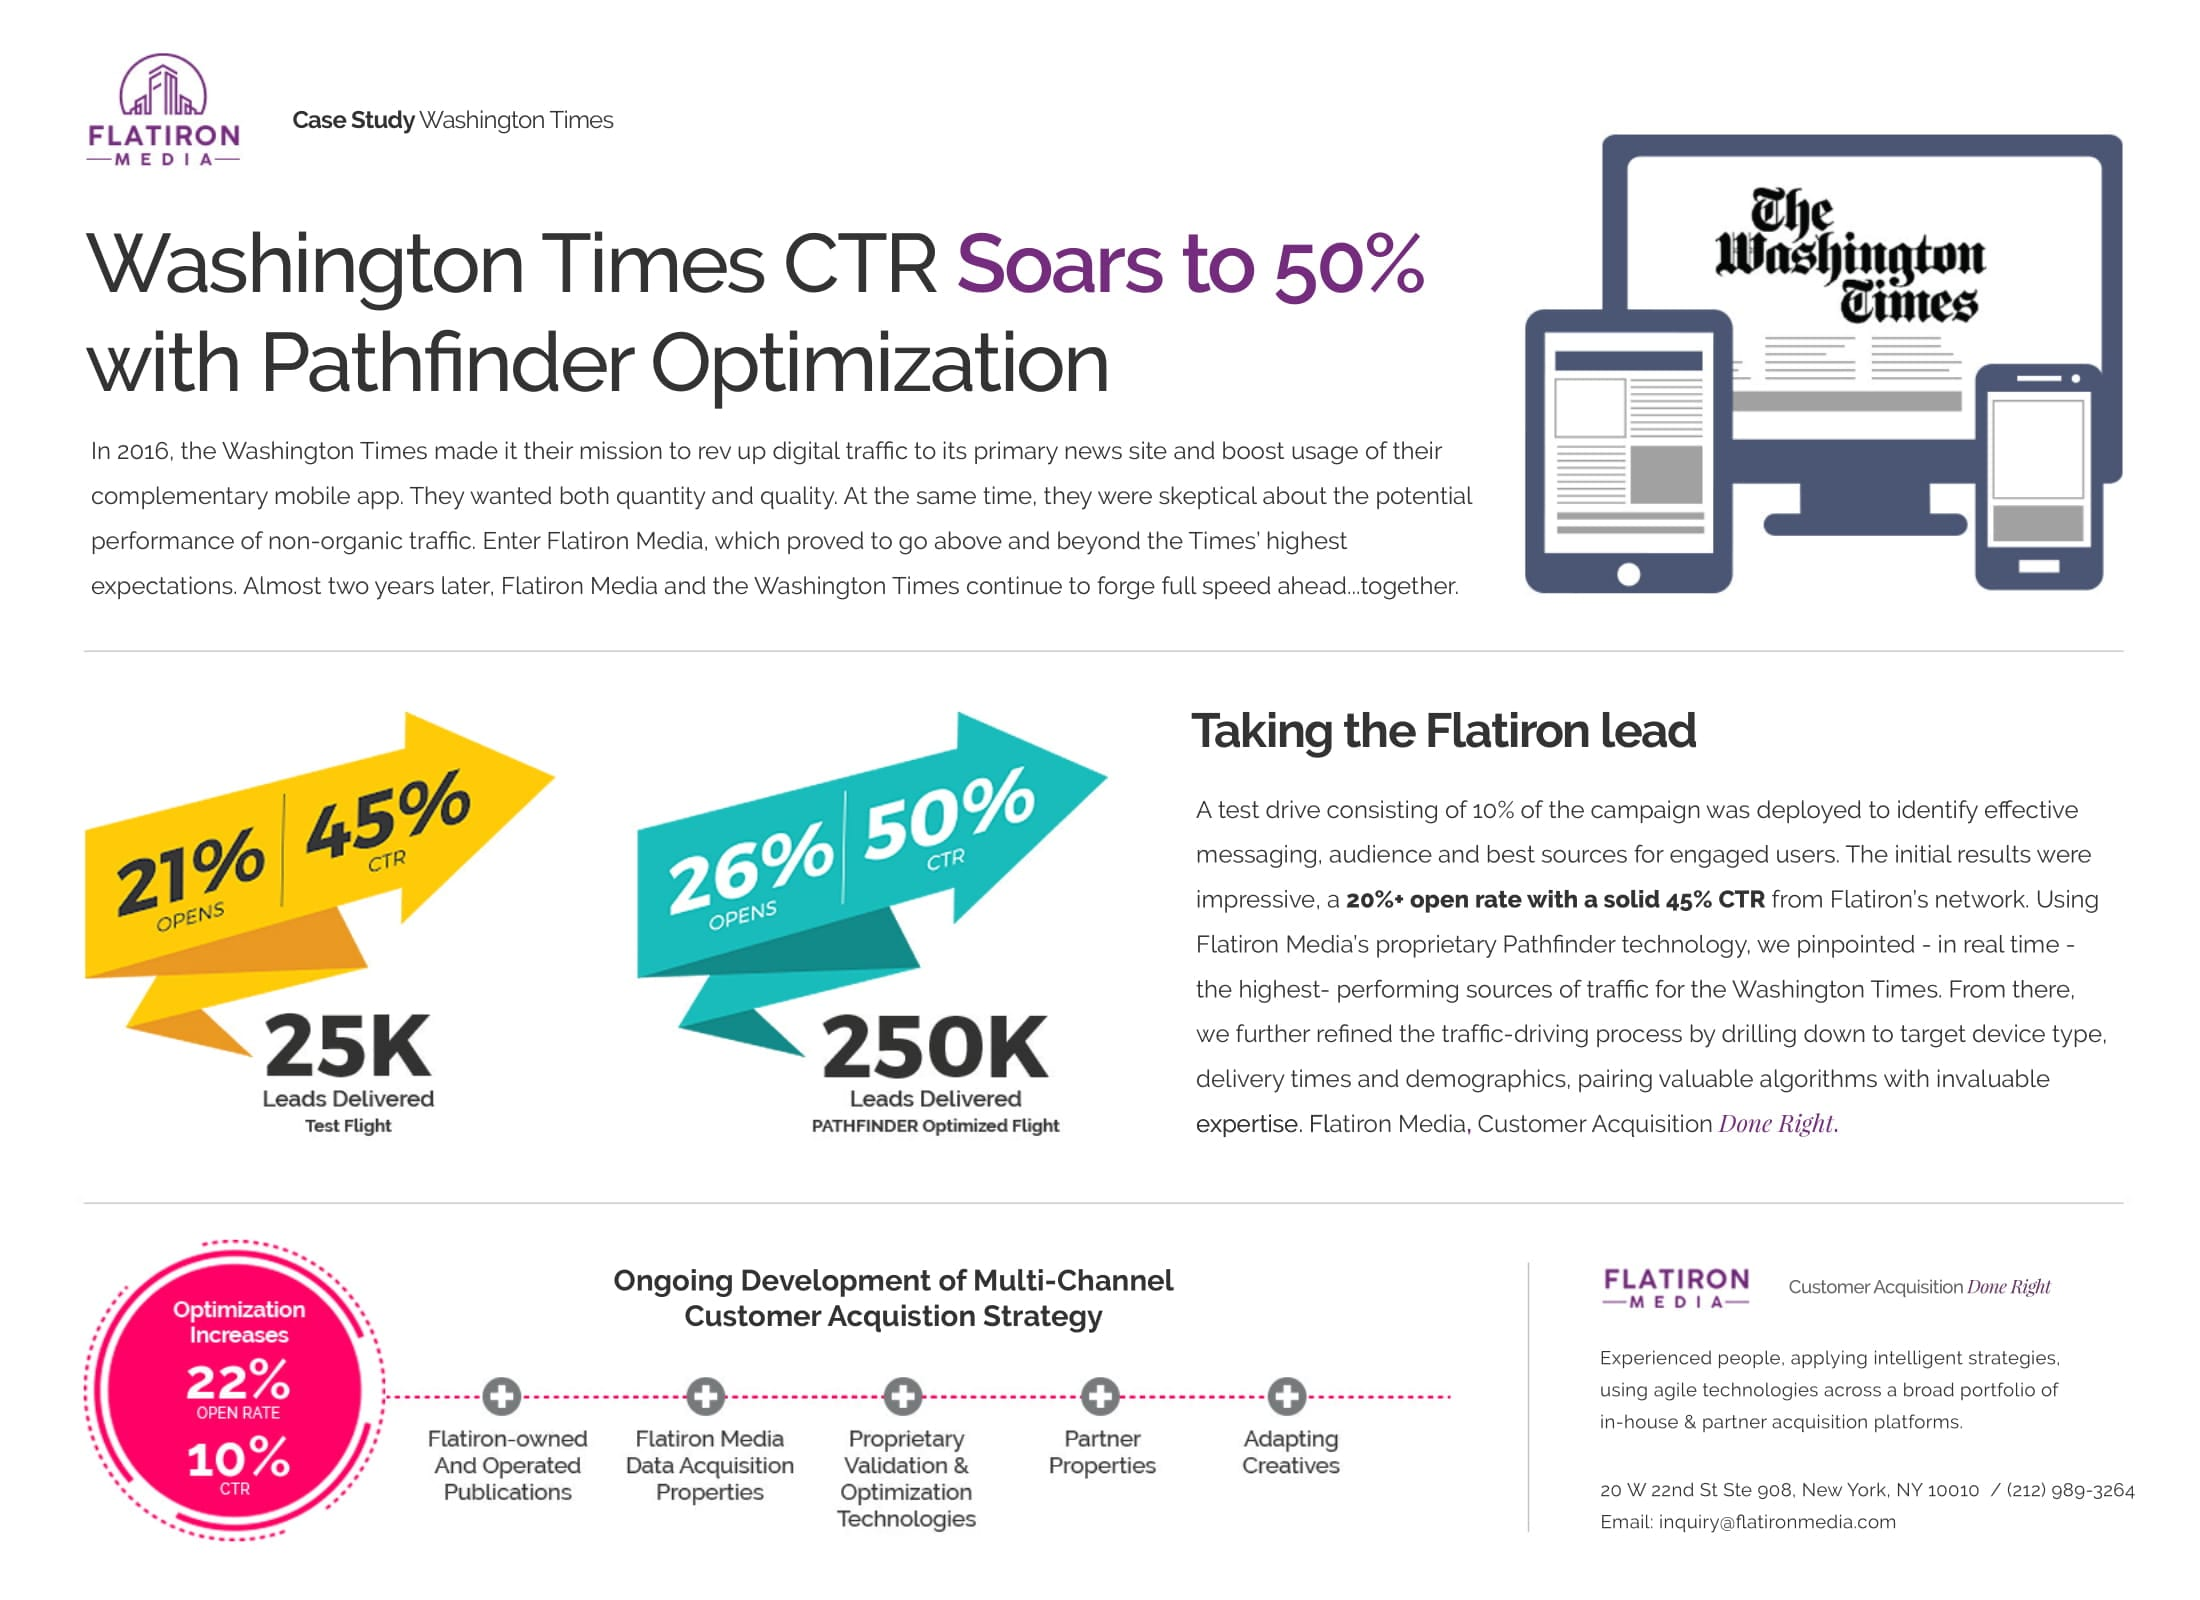 Washington Times Case Study Optimization Advertise